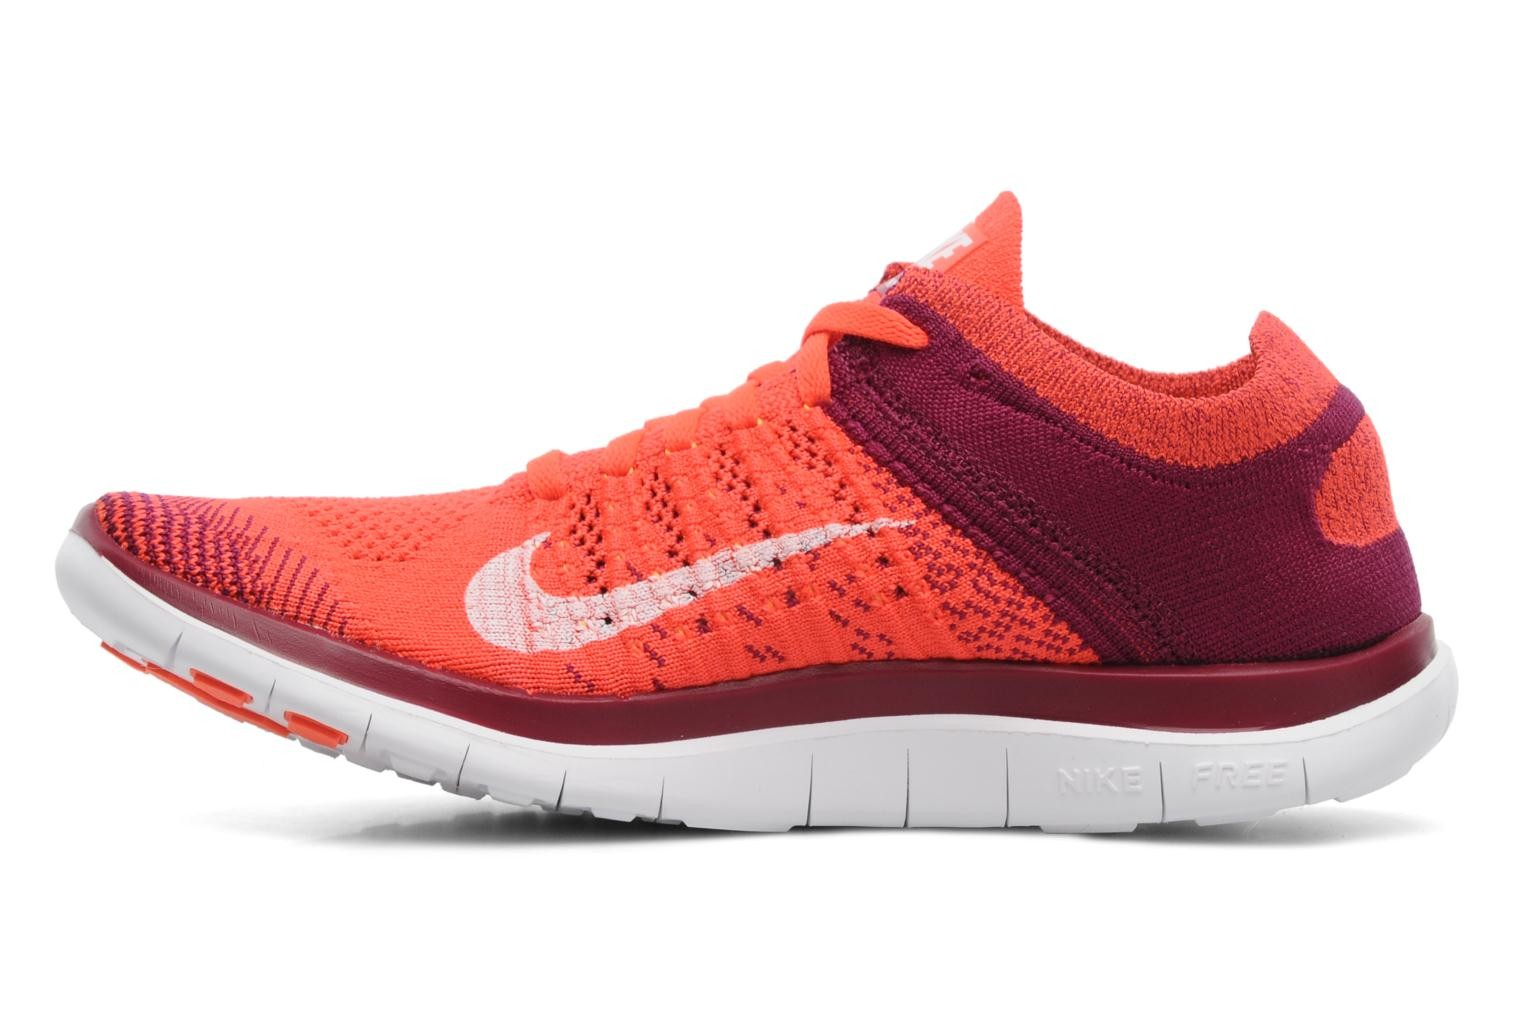 Nike WMNS Free 4.0 Flyknit Bright Crimson-White-Raspberry Red-Laser Orange Women's Running Shoe